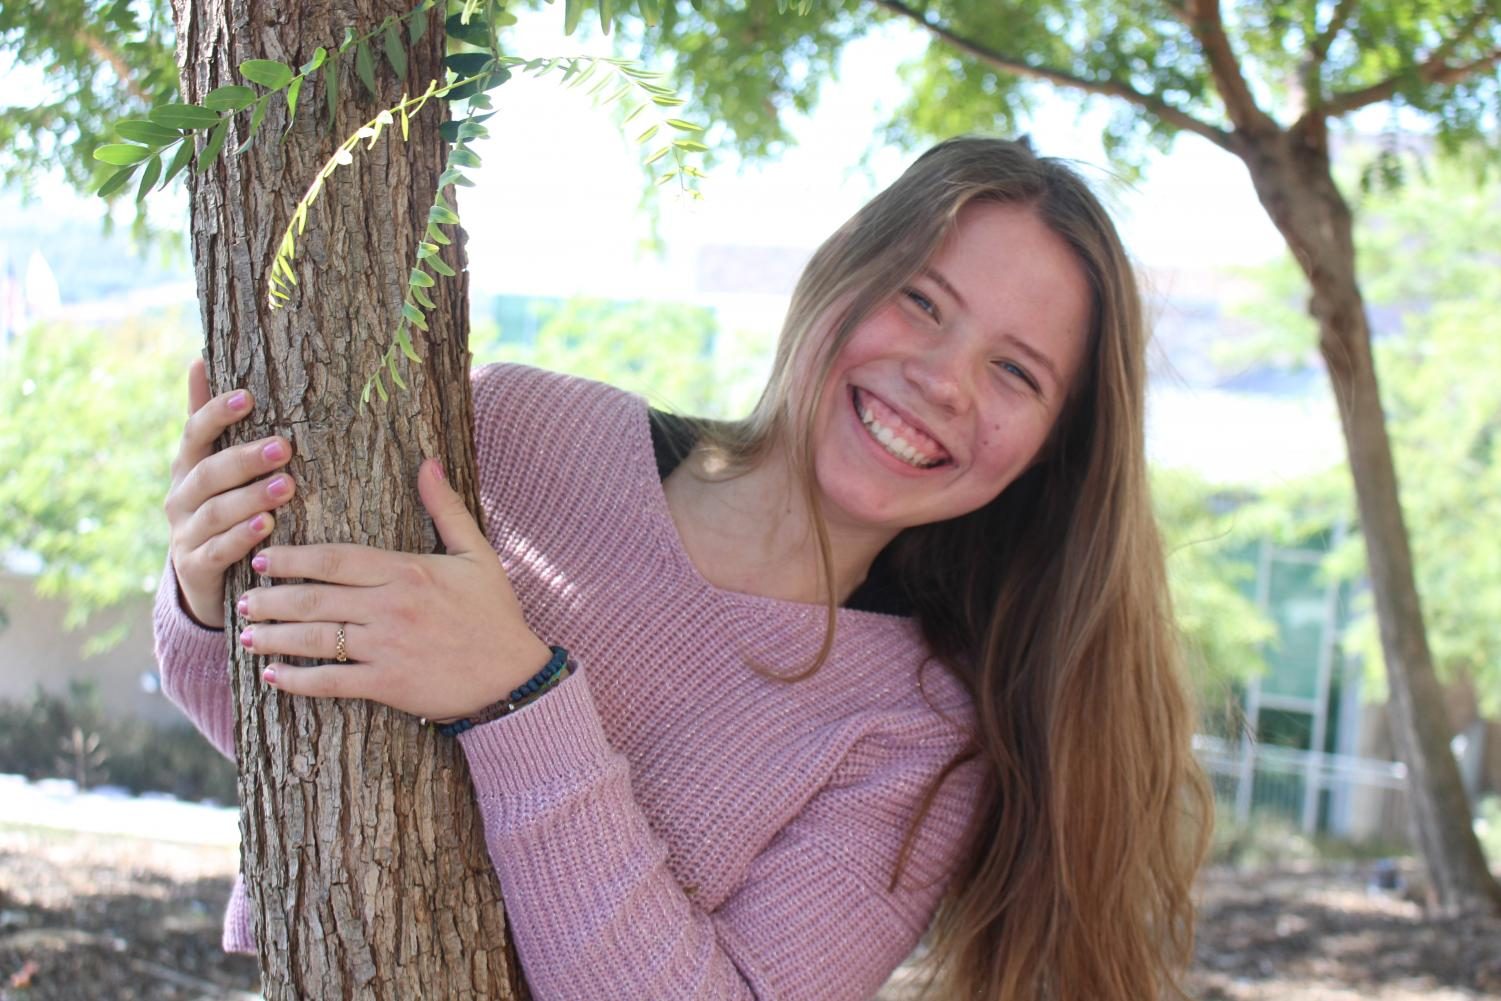 With even more happiness than before, Kailiyah Hauser demonstrates her love for nature and everything kind by posing near the Sage Creek trees while talking about her life.